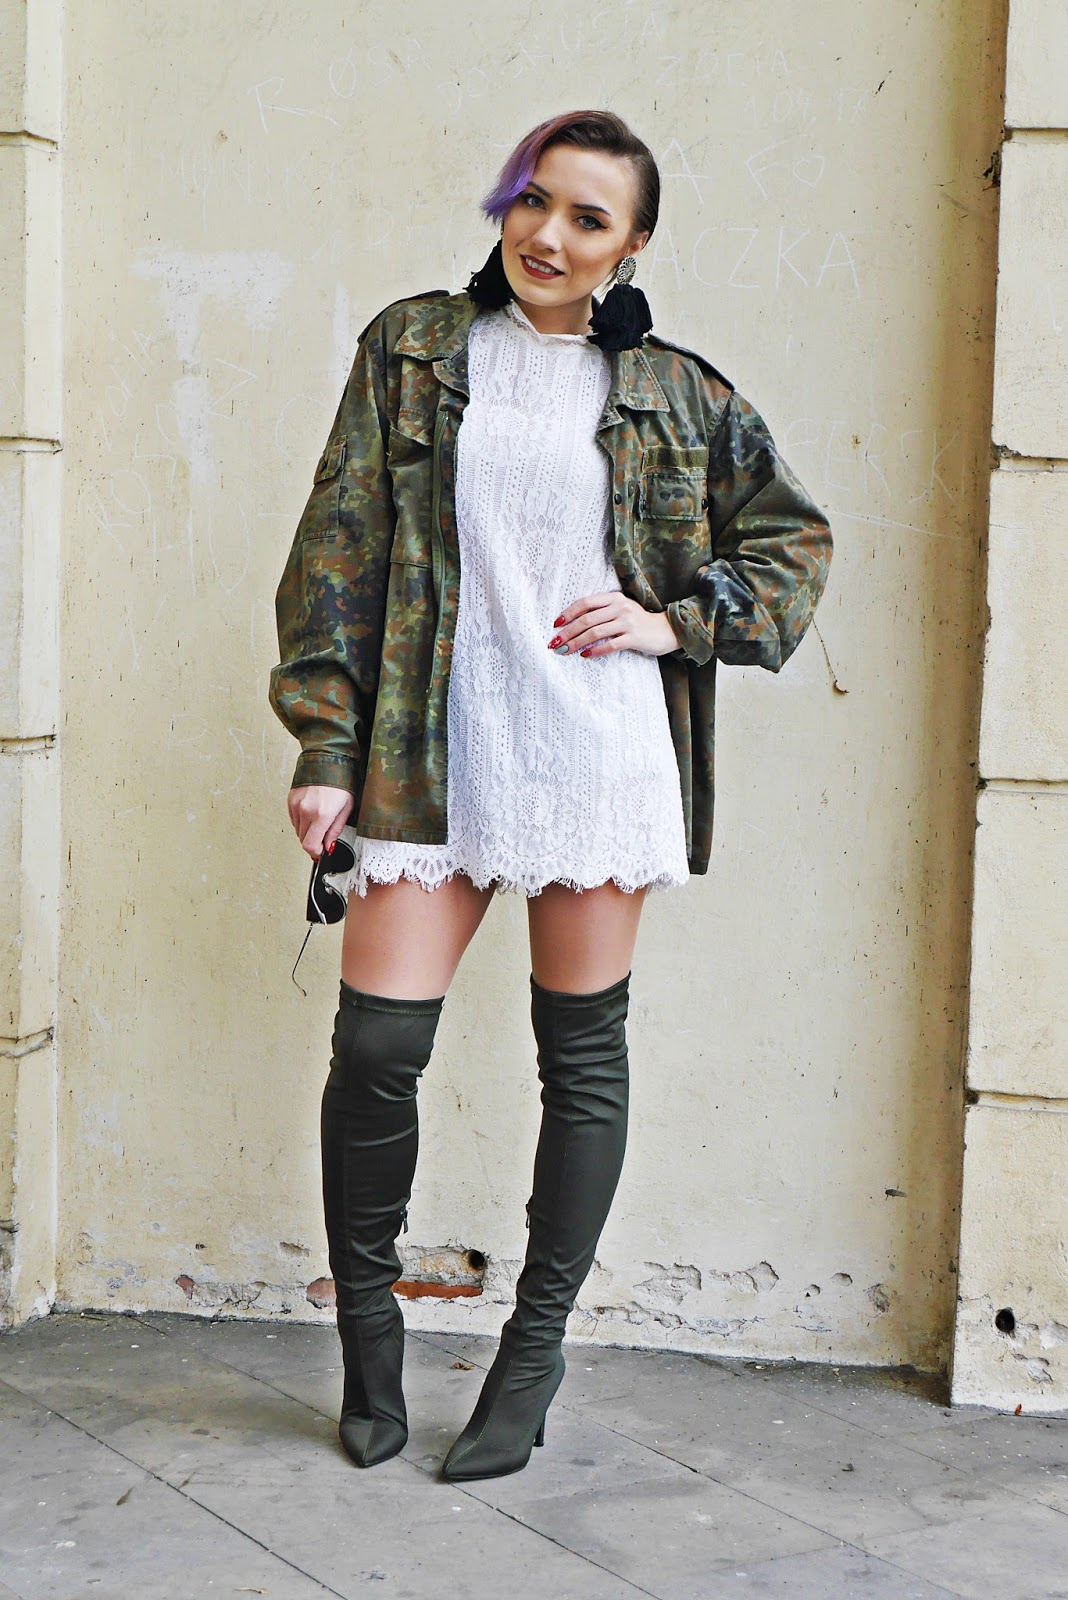 1_moro_jacket_military_white_lace_dress_karyn_blog_modowy_renee_031217